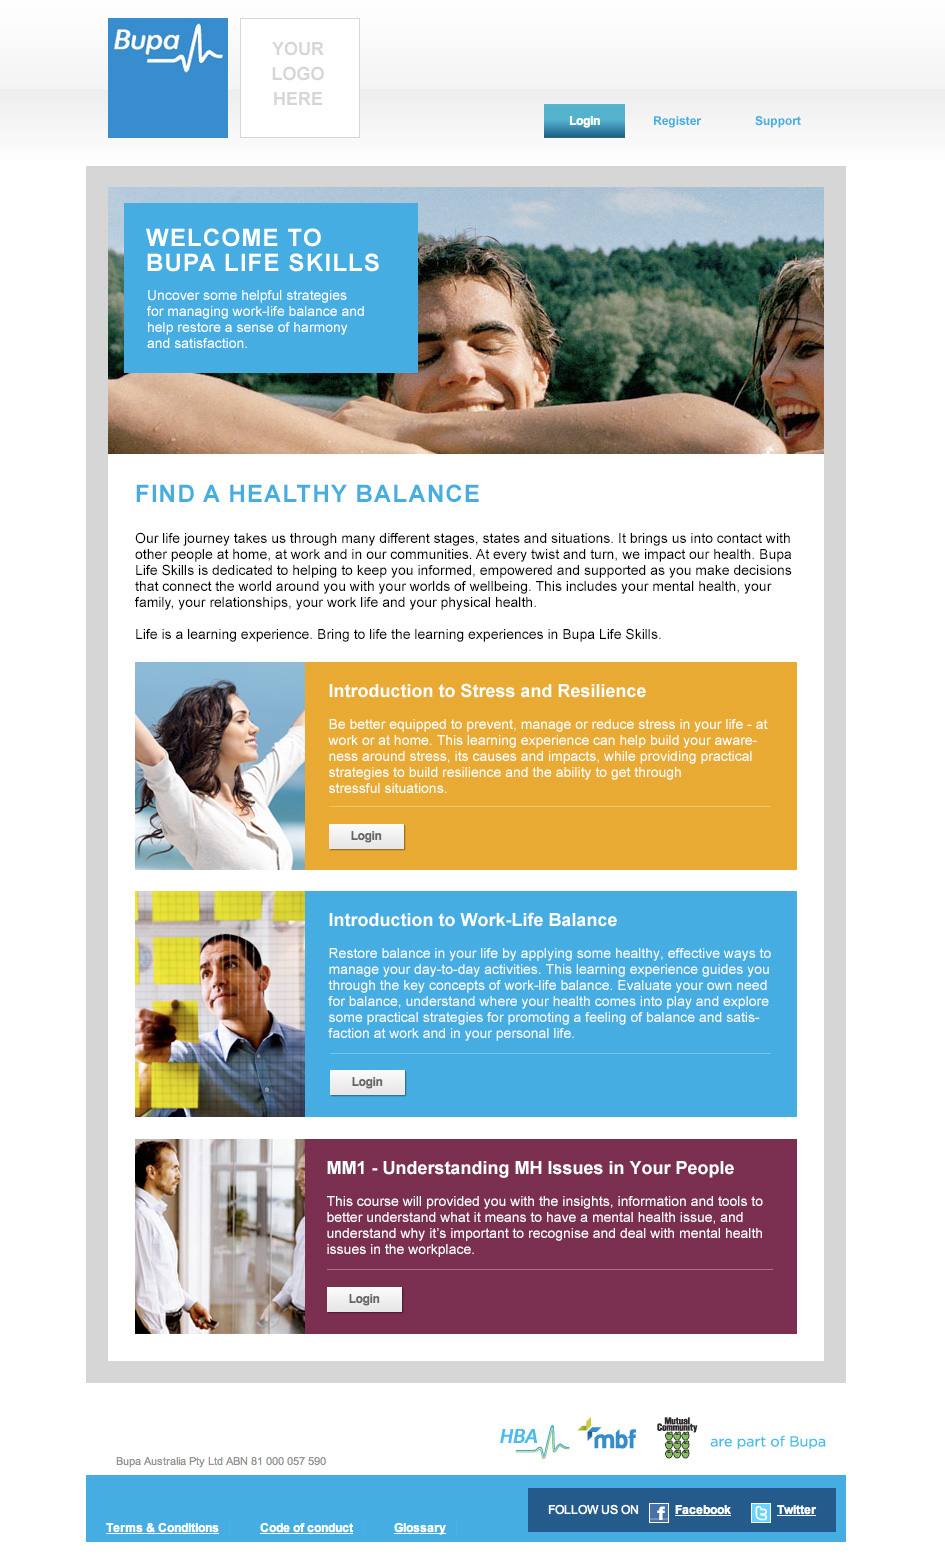 Bupa - CoBrand templates - Website design & development in Farnborough, Hampshire